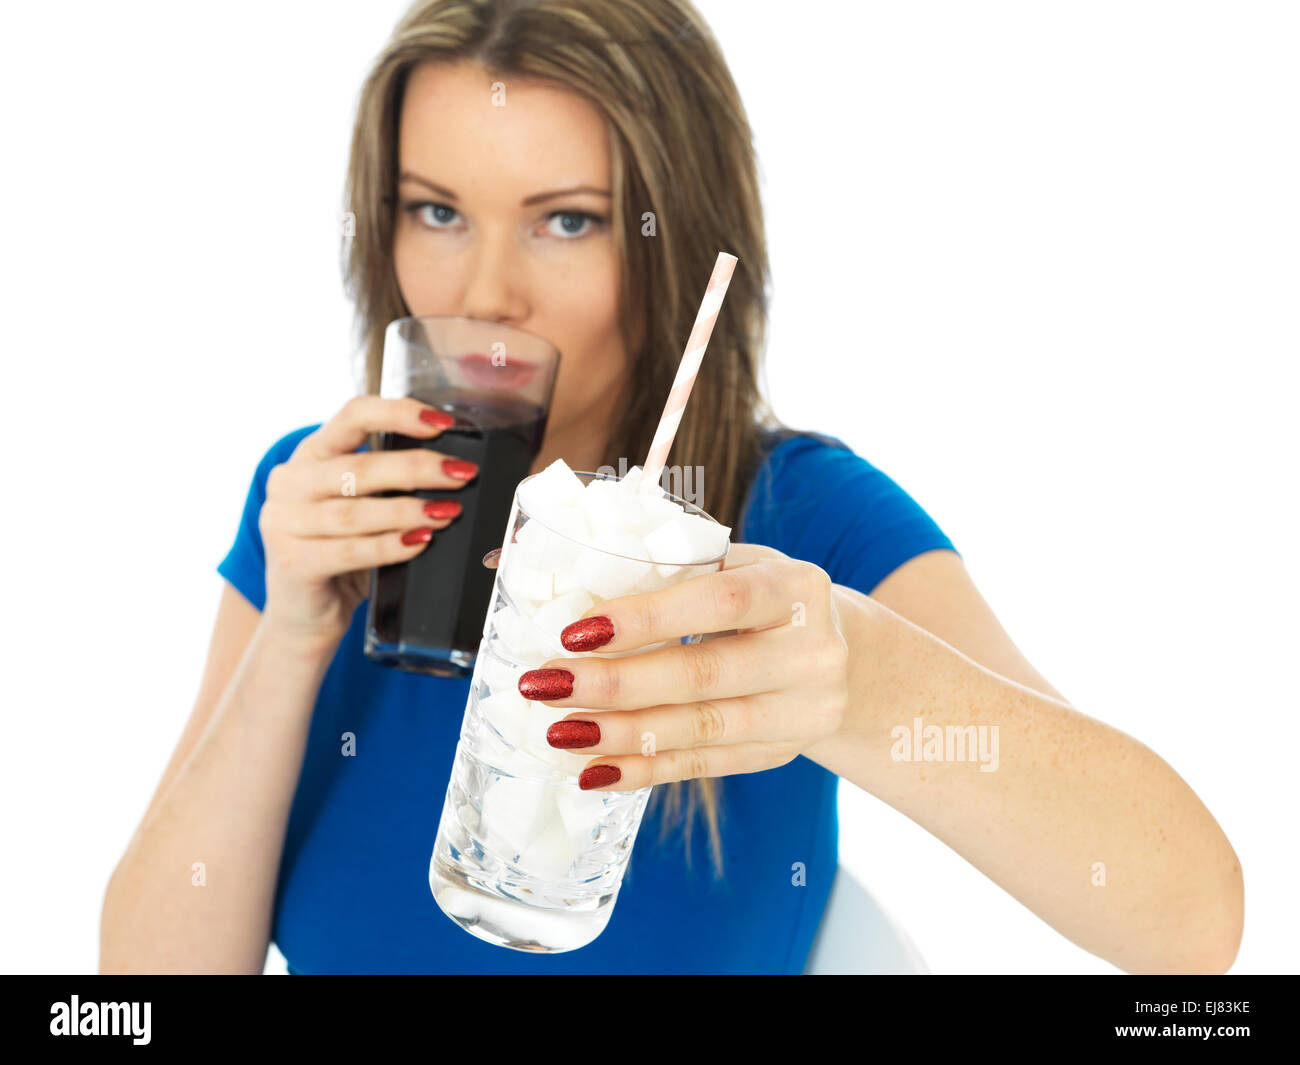 Attractive Young Woman Drinking High Sugar Fizzy Drink - Stock Image